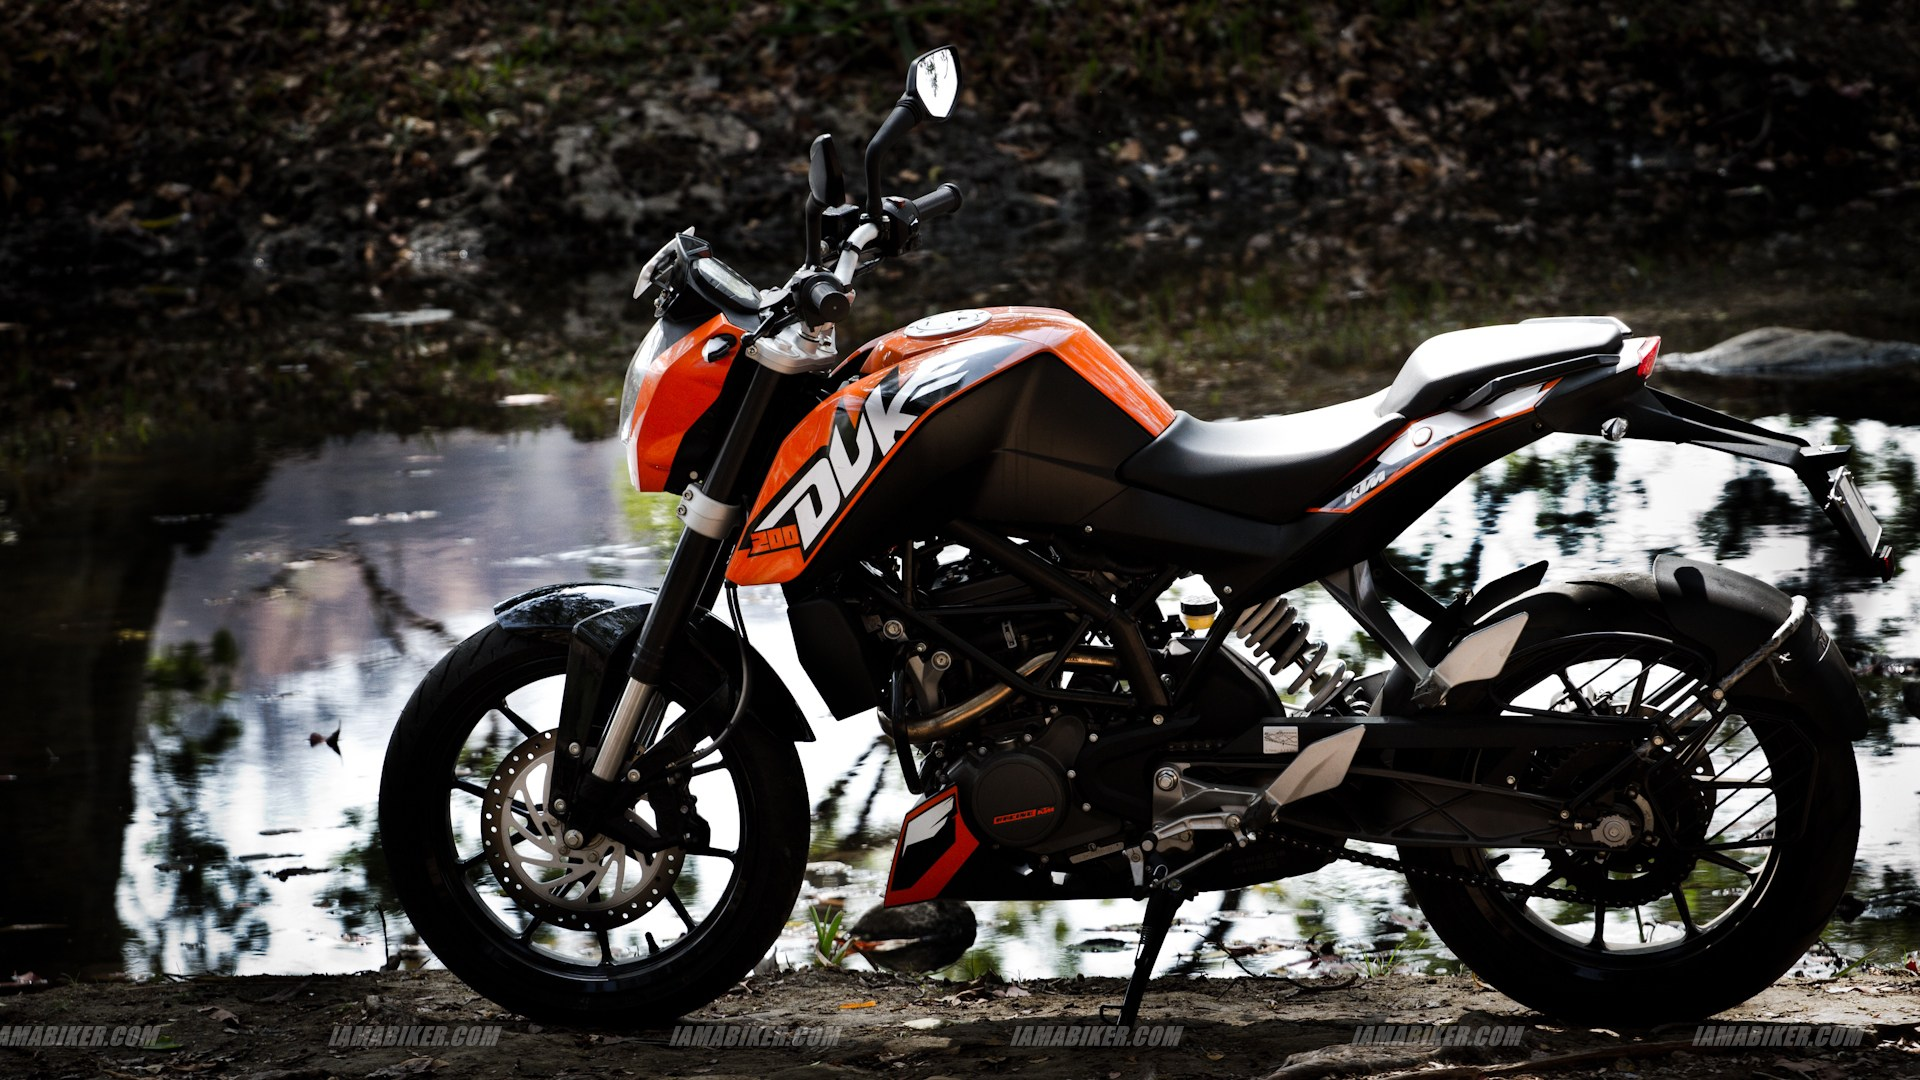 Ktm Duke 200 Hd Wallpaper Gallery Click On Picture Duke 200 Background 1920x1080 Download Hd Wallpaper Wallpapertip